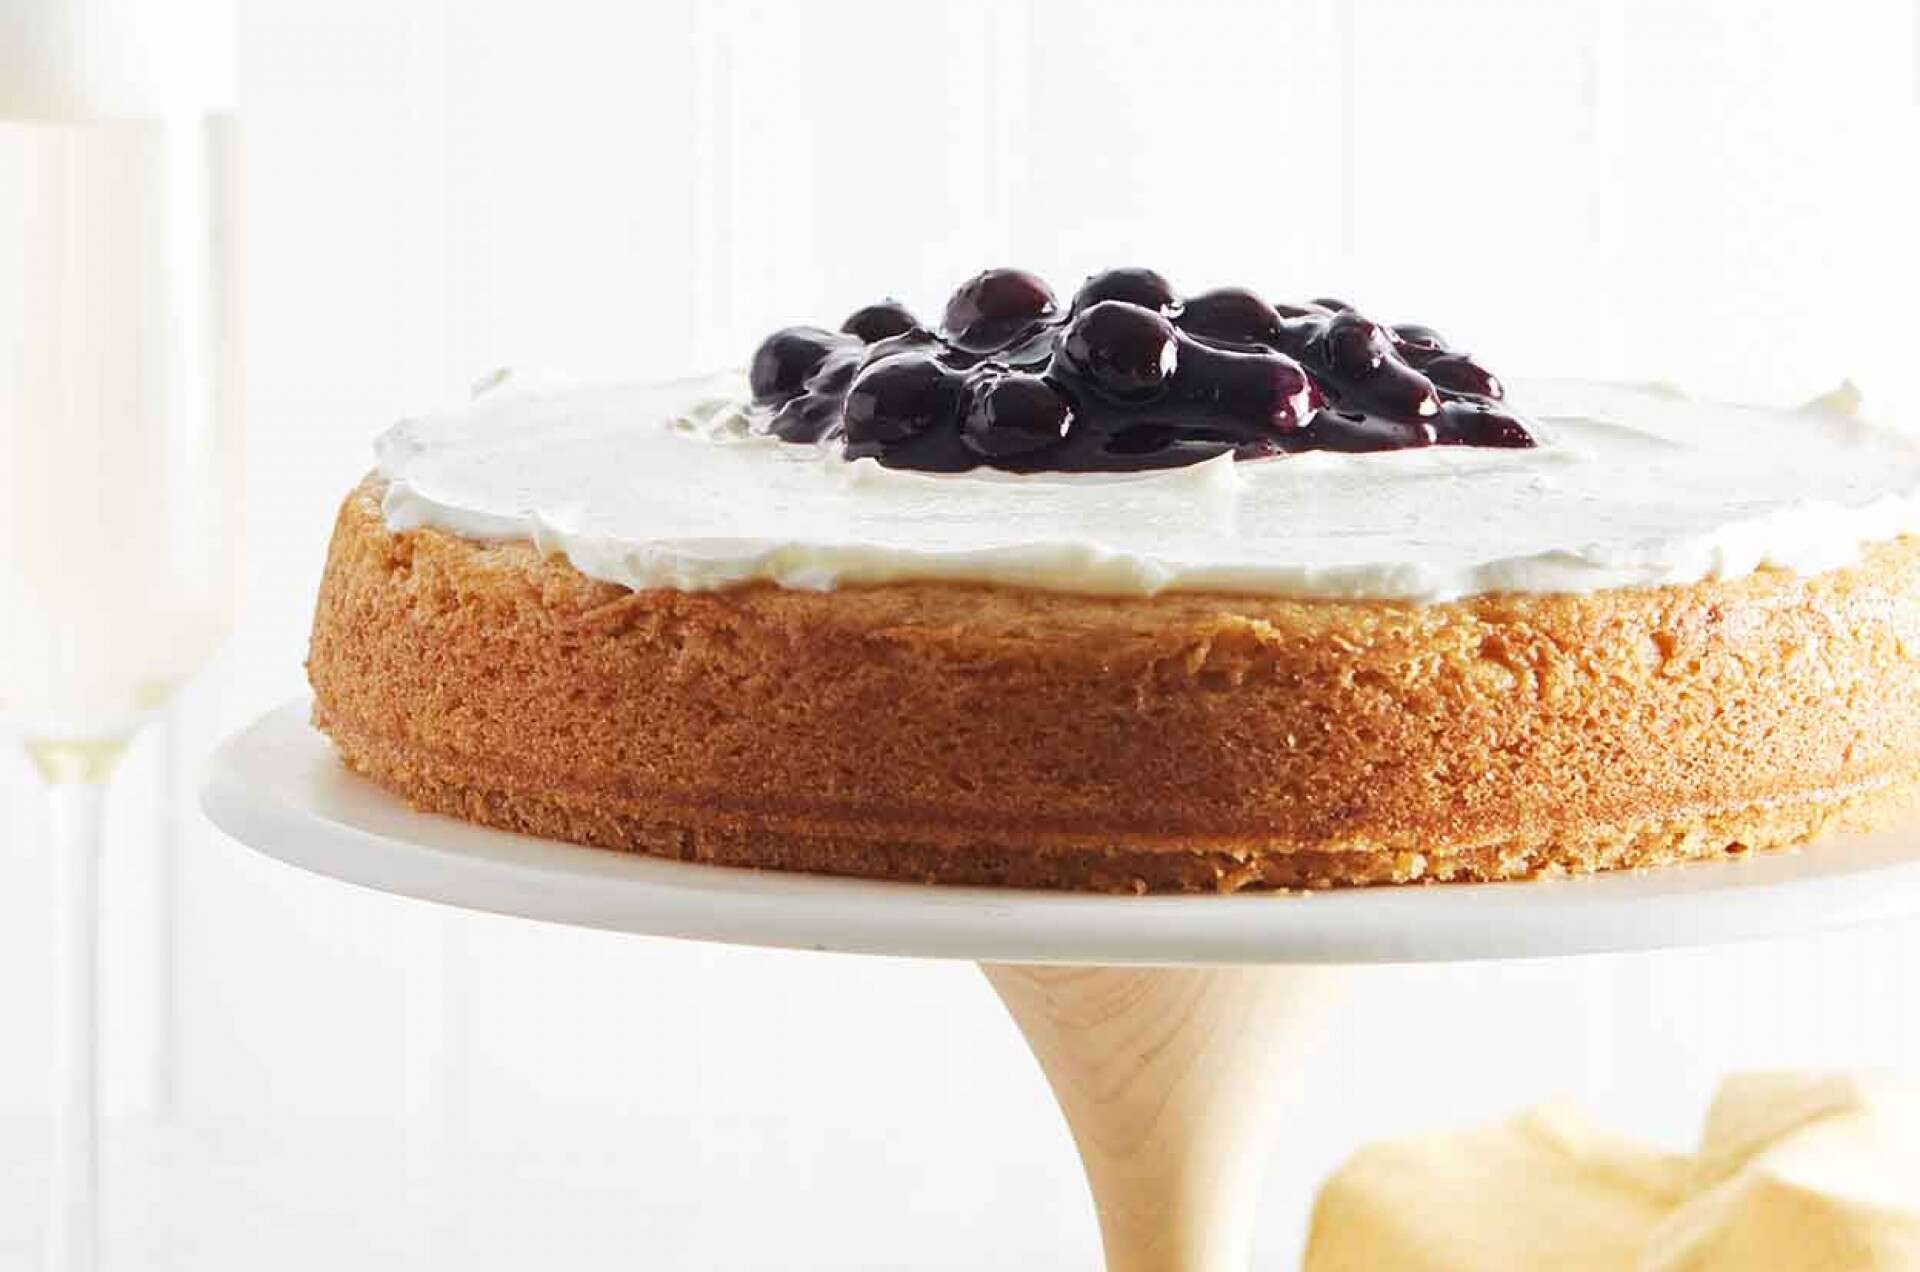 lemon cake on a white cake stand with white icing and blue berry compote